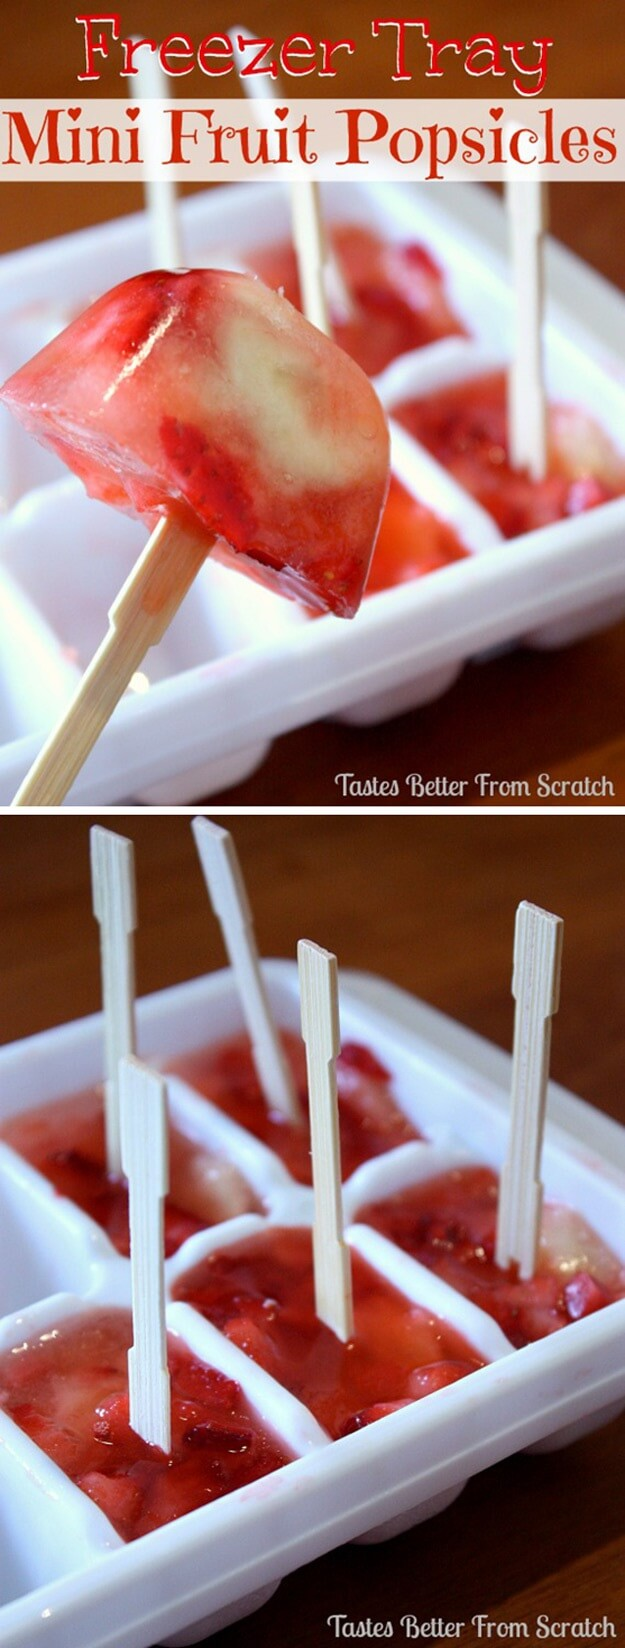 Freezer-Tray-Mini-Fruit-Popsicles-k4craft